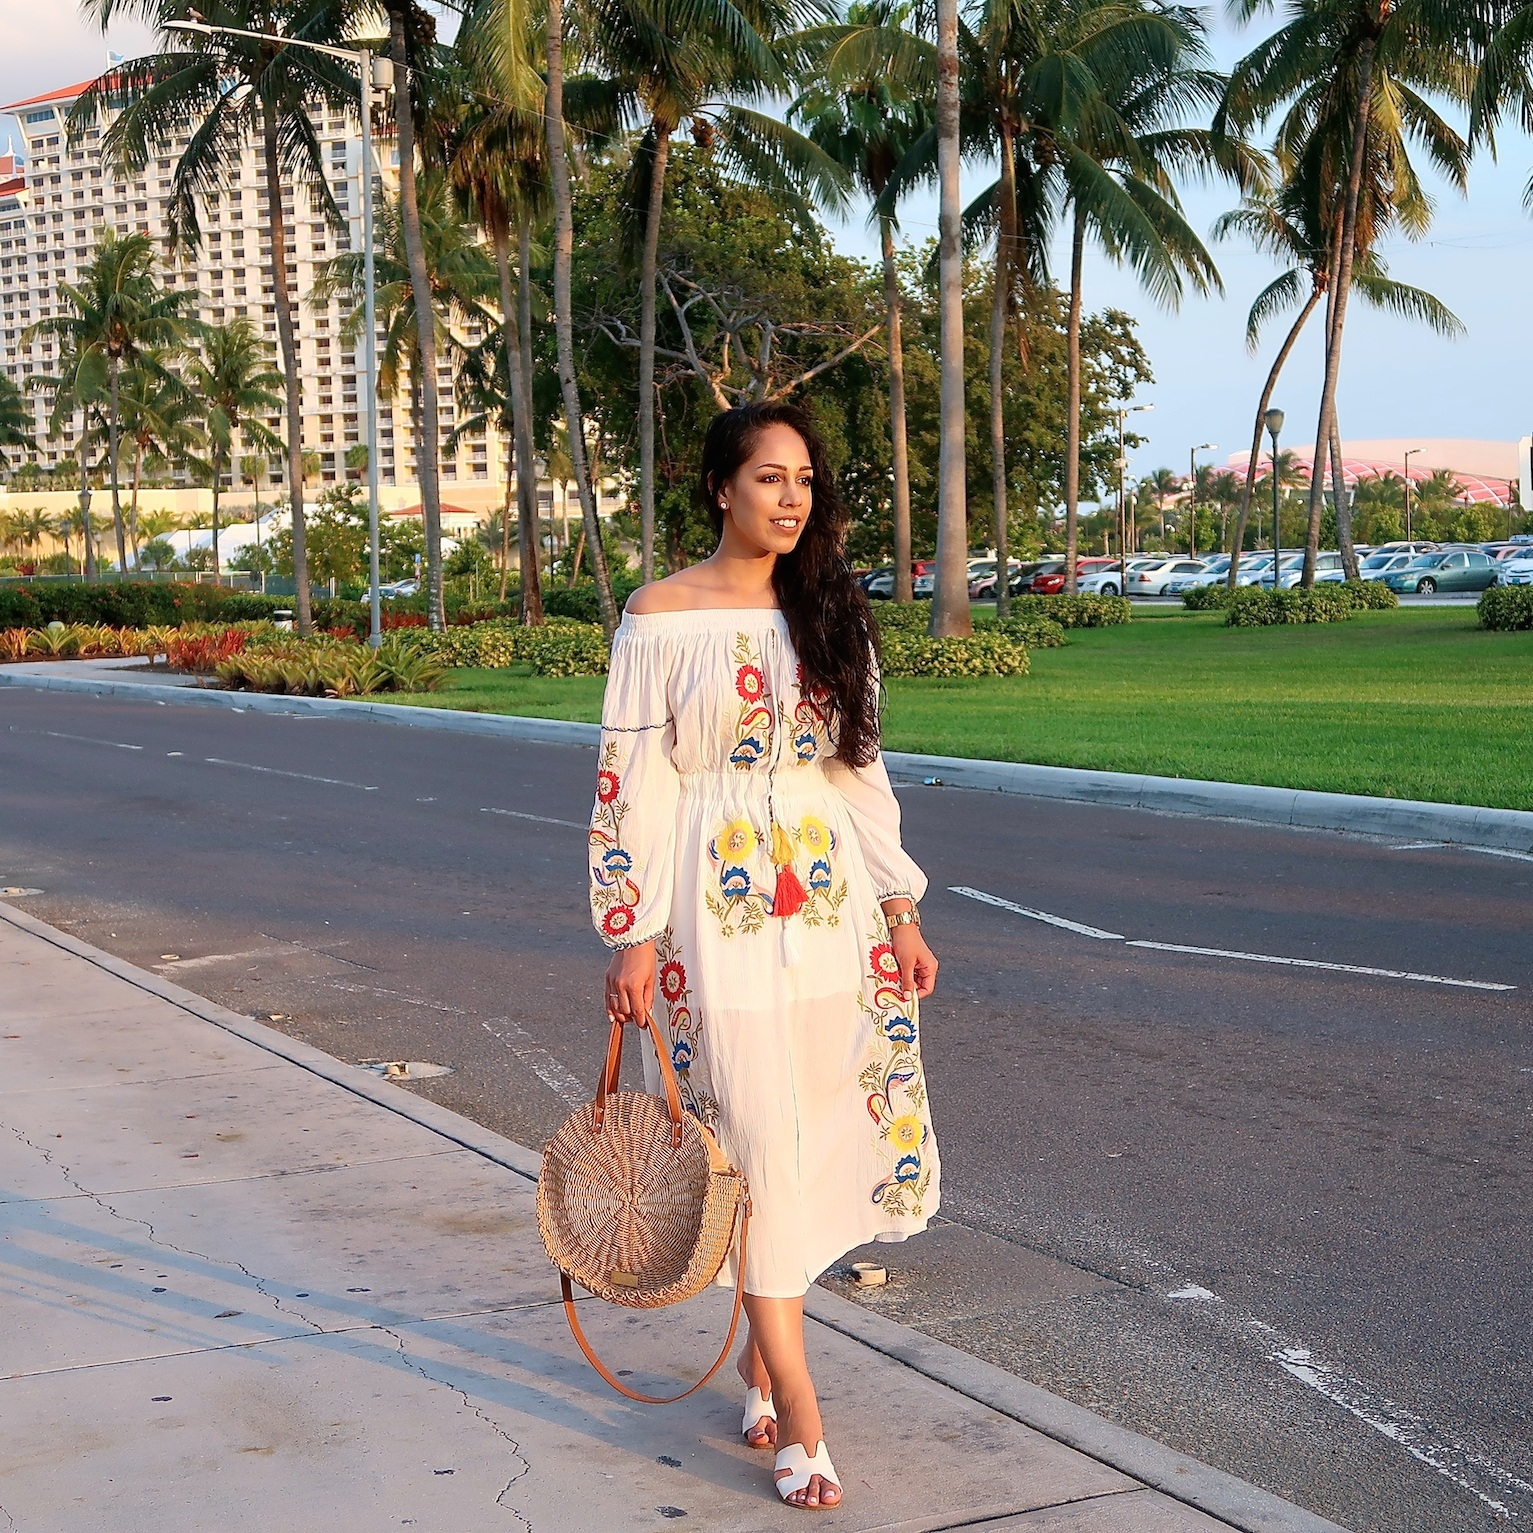 resort-wear-vacation-style-outfit-inspiration-fashion-blogger.JPG